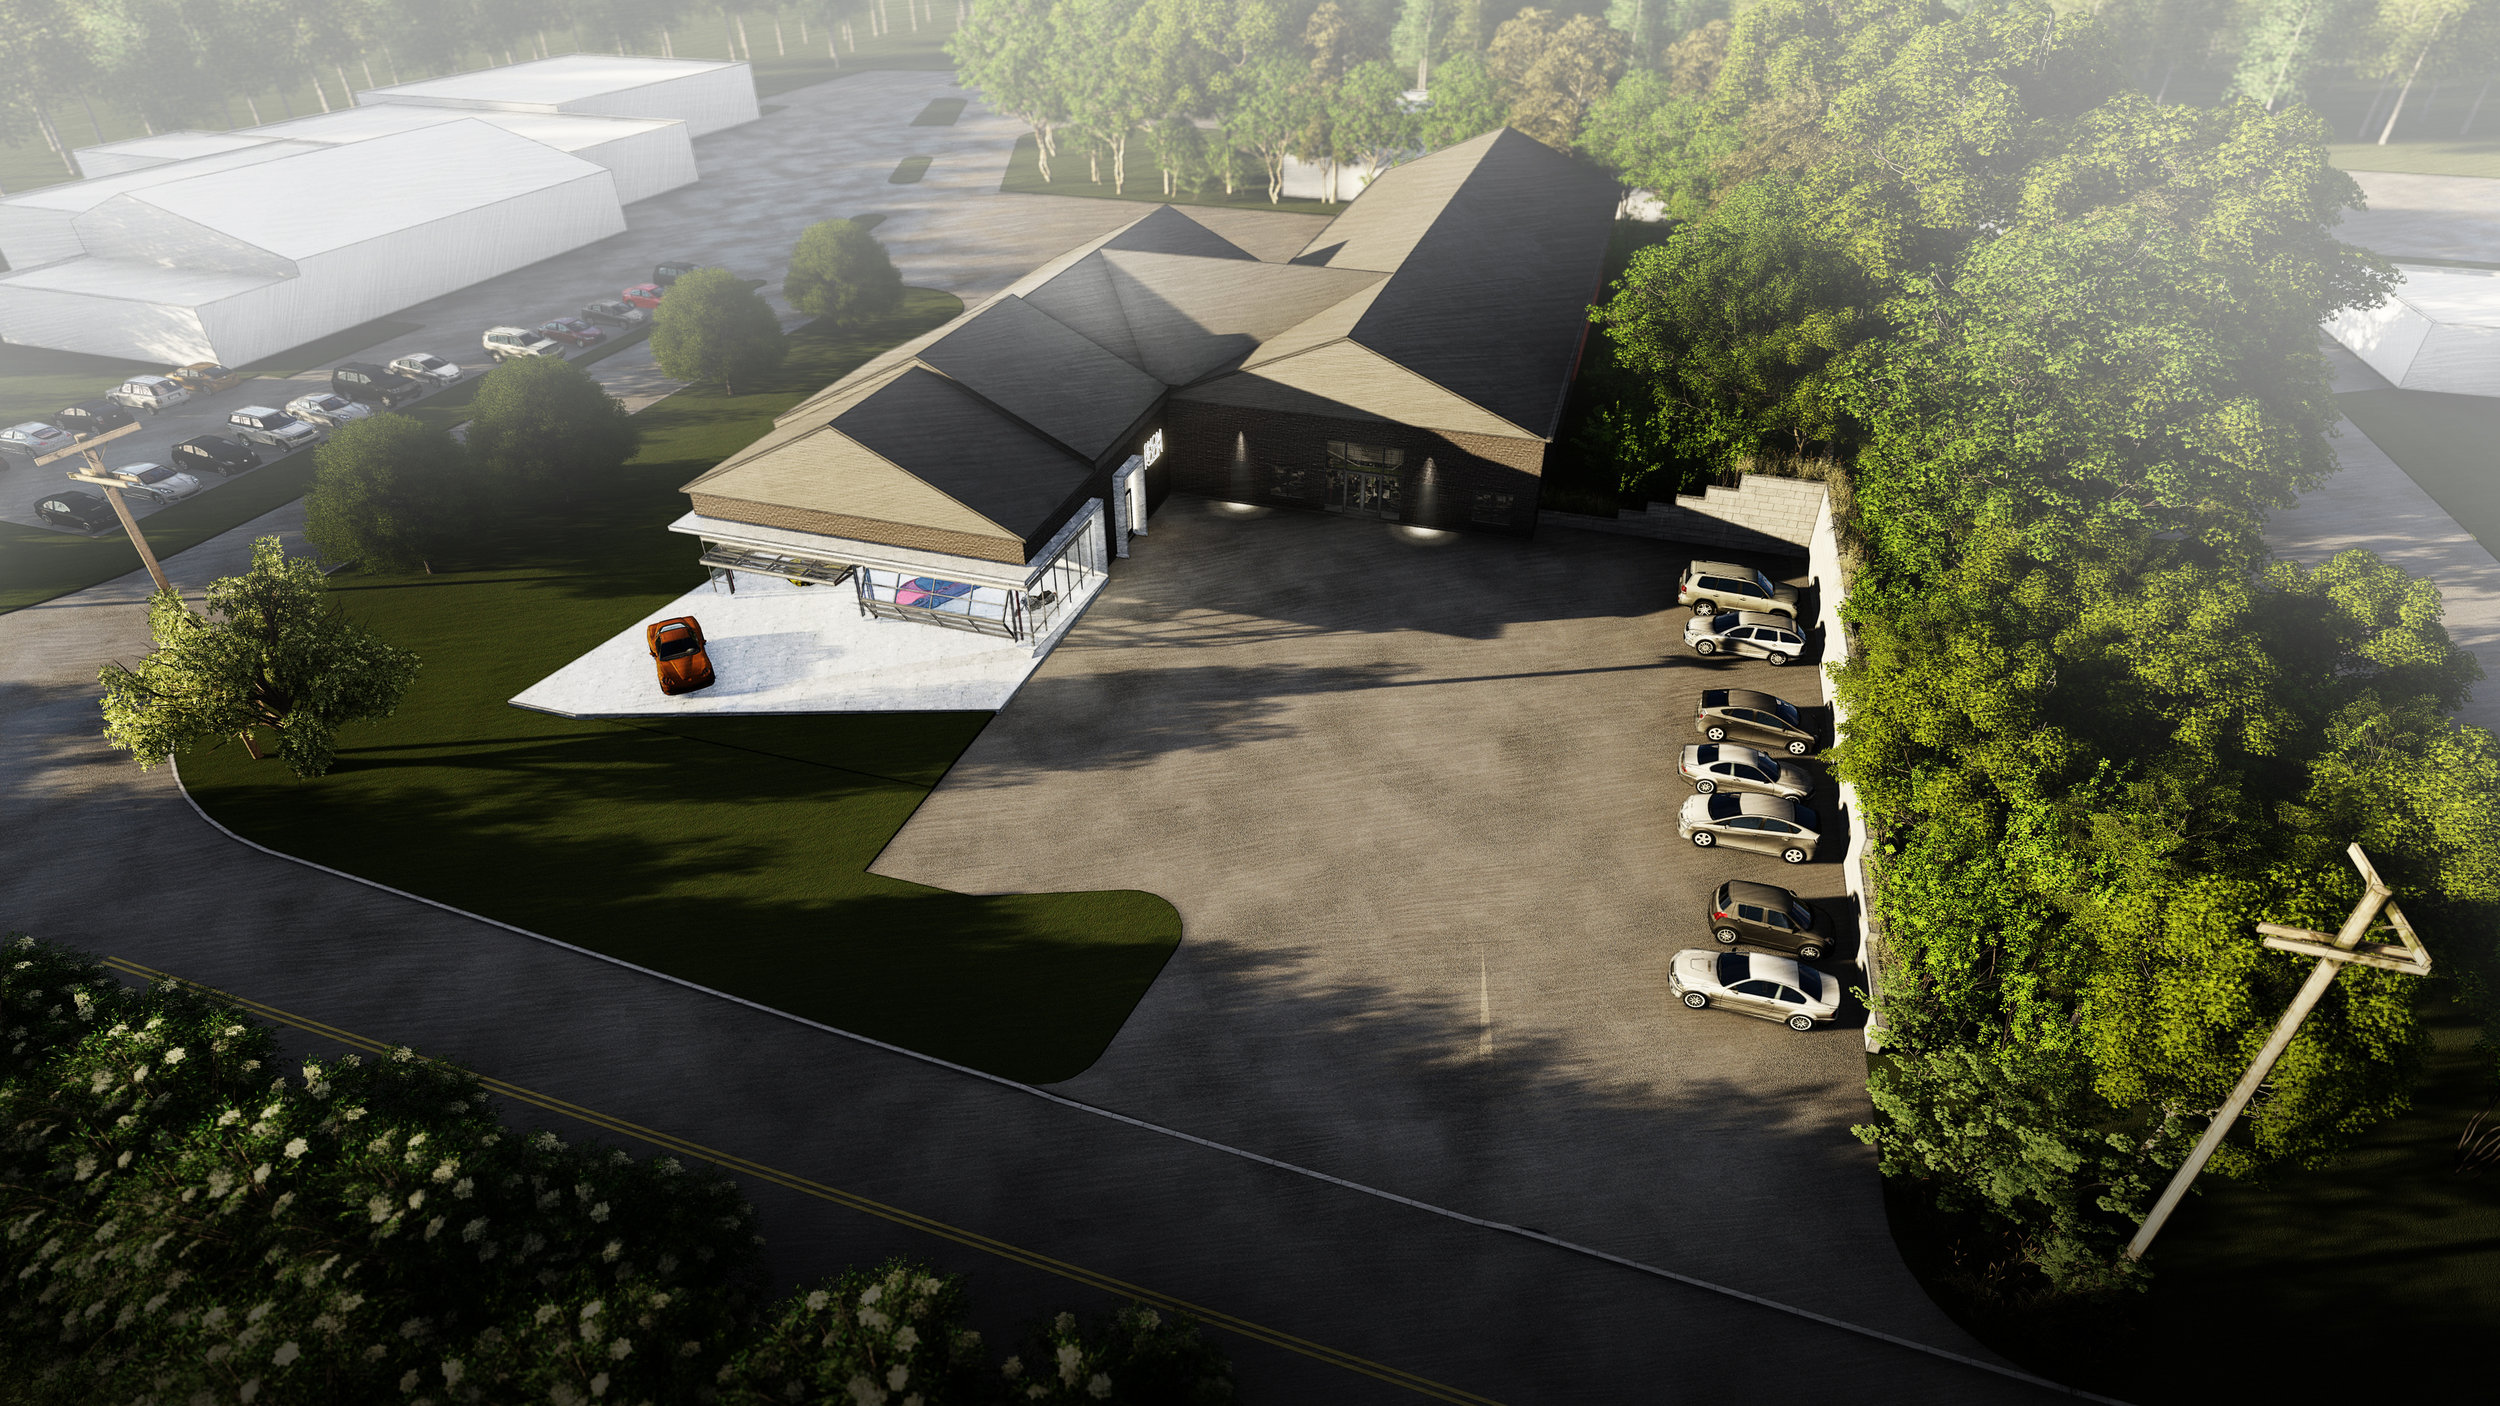 BIRDS-EYE CONCEPT - OOMBRA ARCHITECTS ©